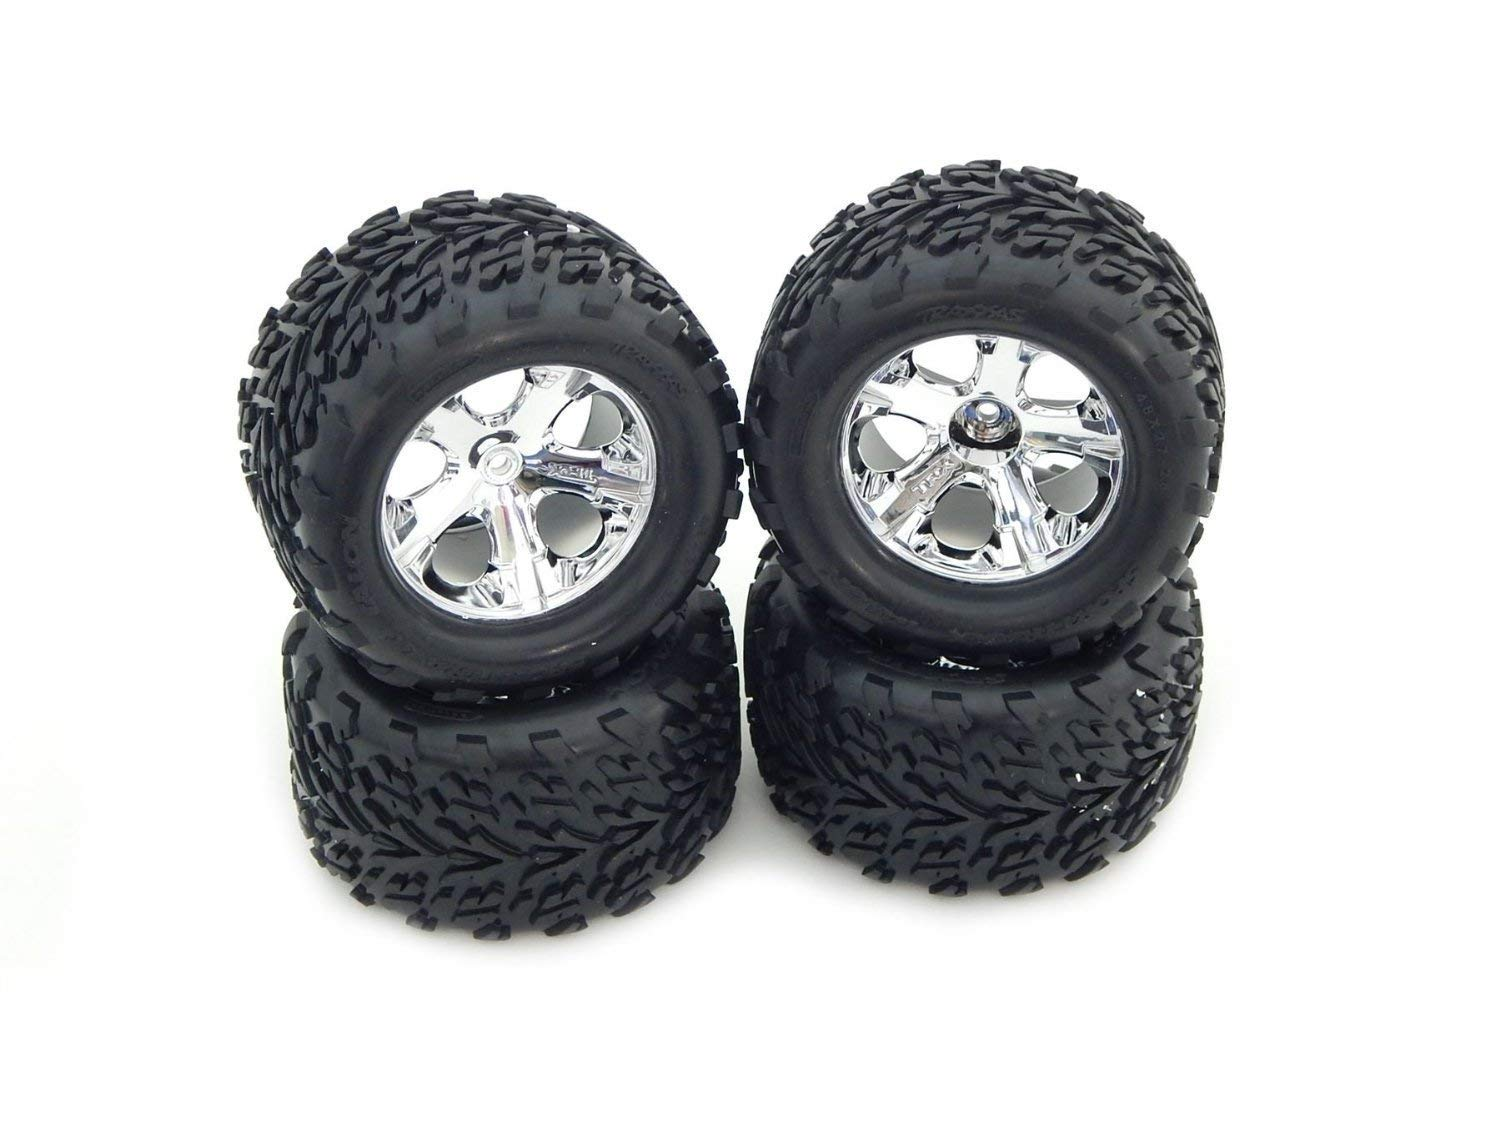 TRAXXAS 1/10 STAMPEDE 2WD SET OF (4) TIRES AND WHEELS.TRAXXAS 2.8'' MOUNTED ALLSTAR WHEELS AND TIRES, THE BEST TIRES EVER MADE FOR THE TRAXXAS STAMPEDE TRUCK.